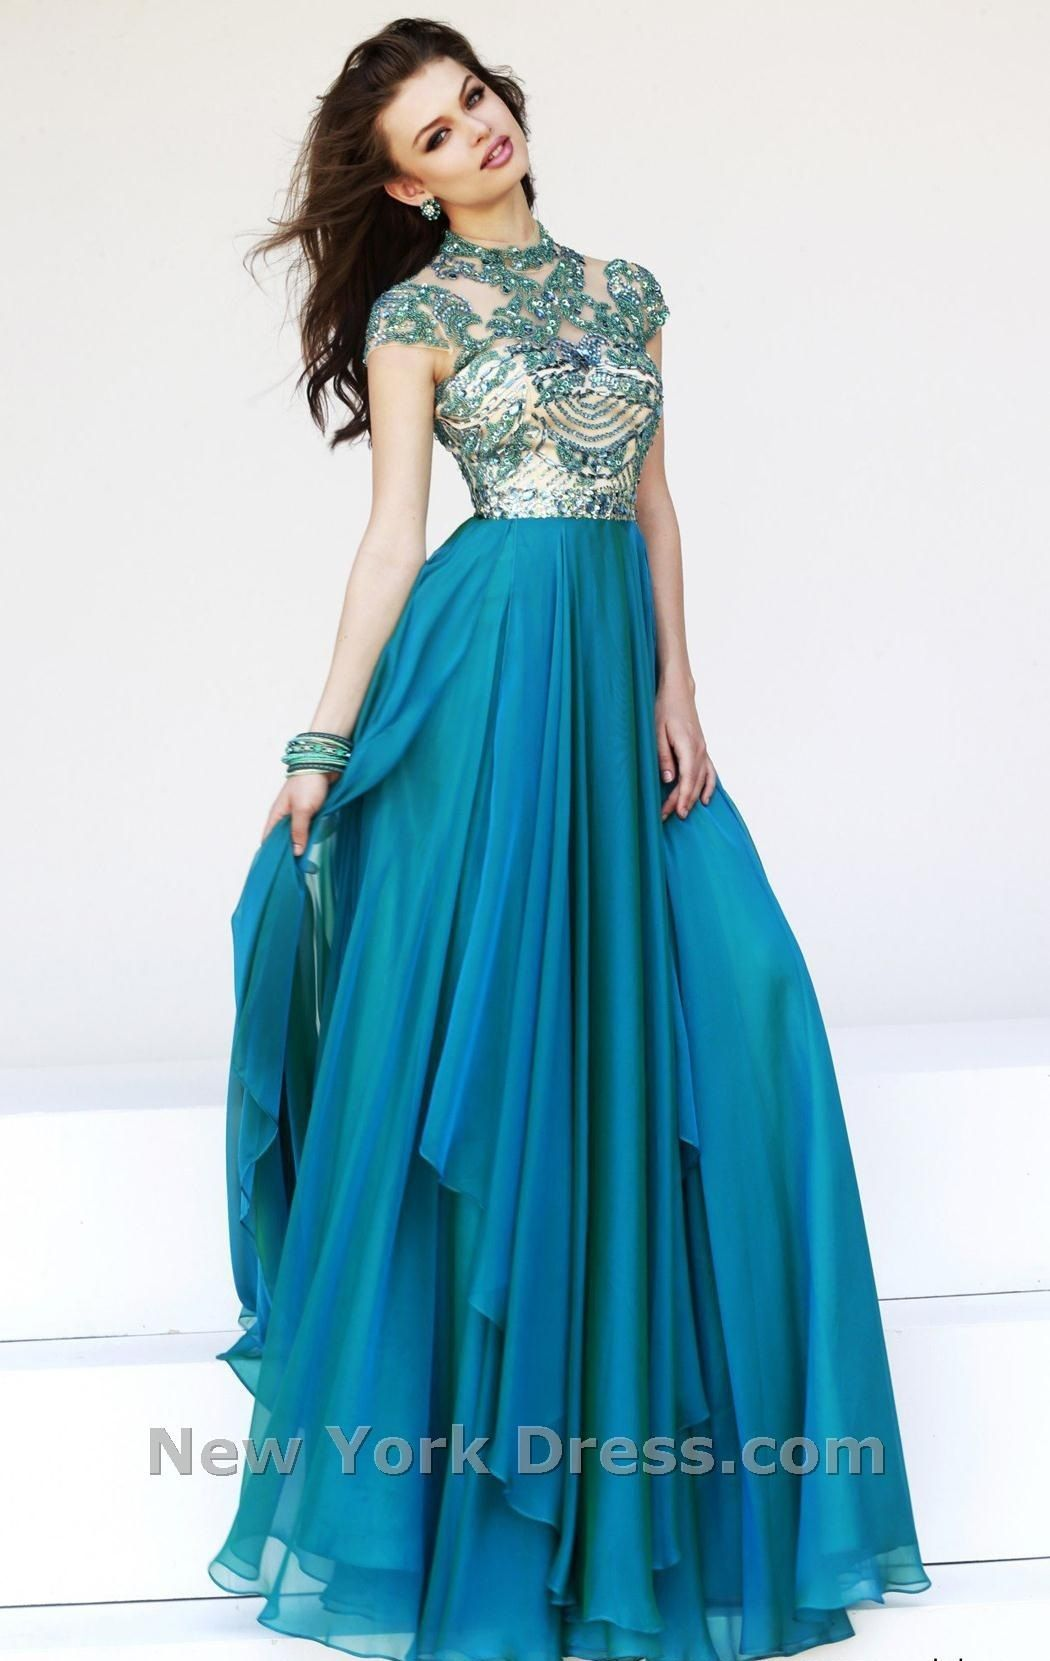 d11777dc70202 Sherri Hill prom and pageant dresses for those who really want to showcase  elegance